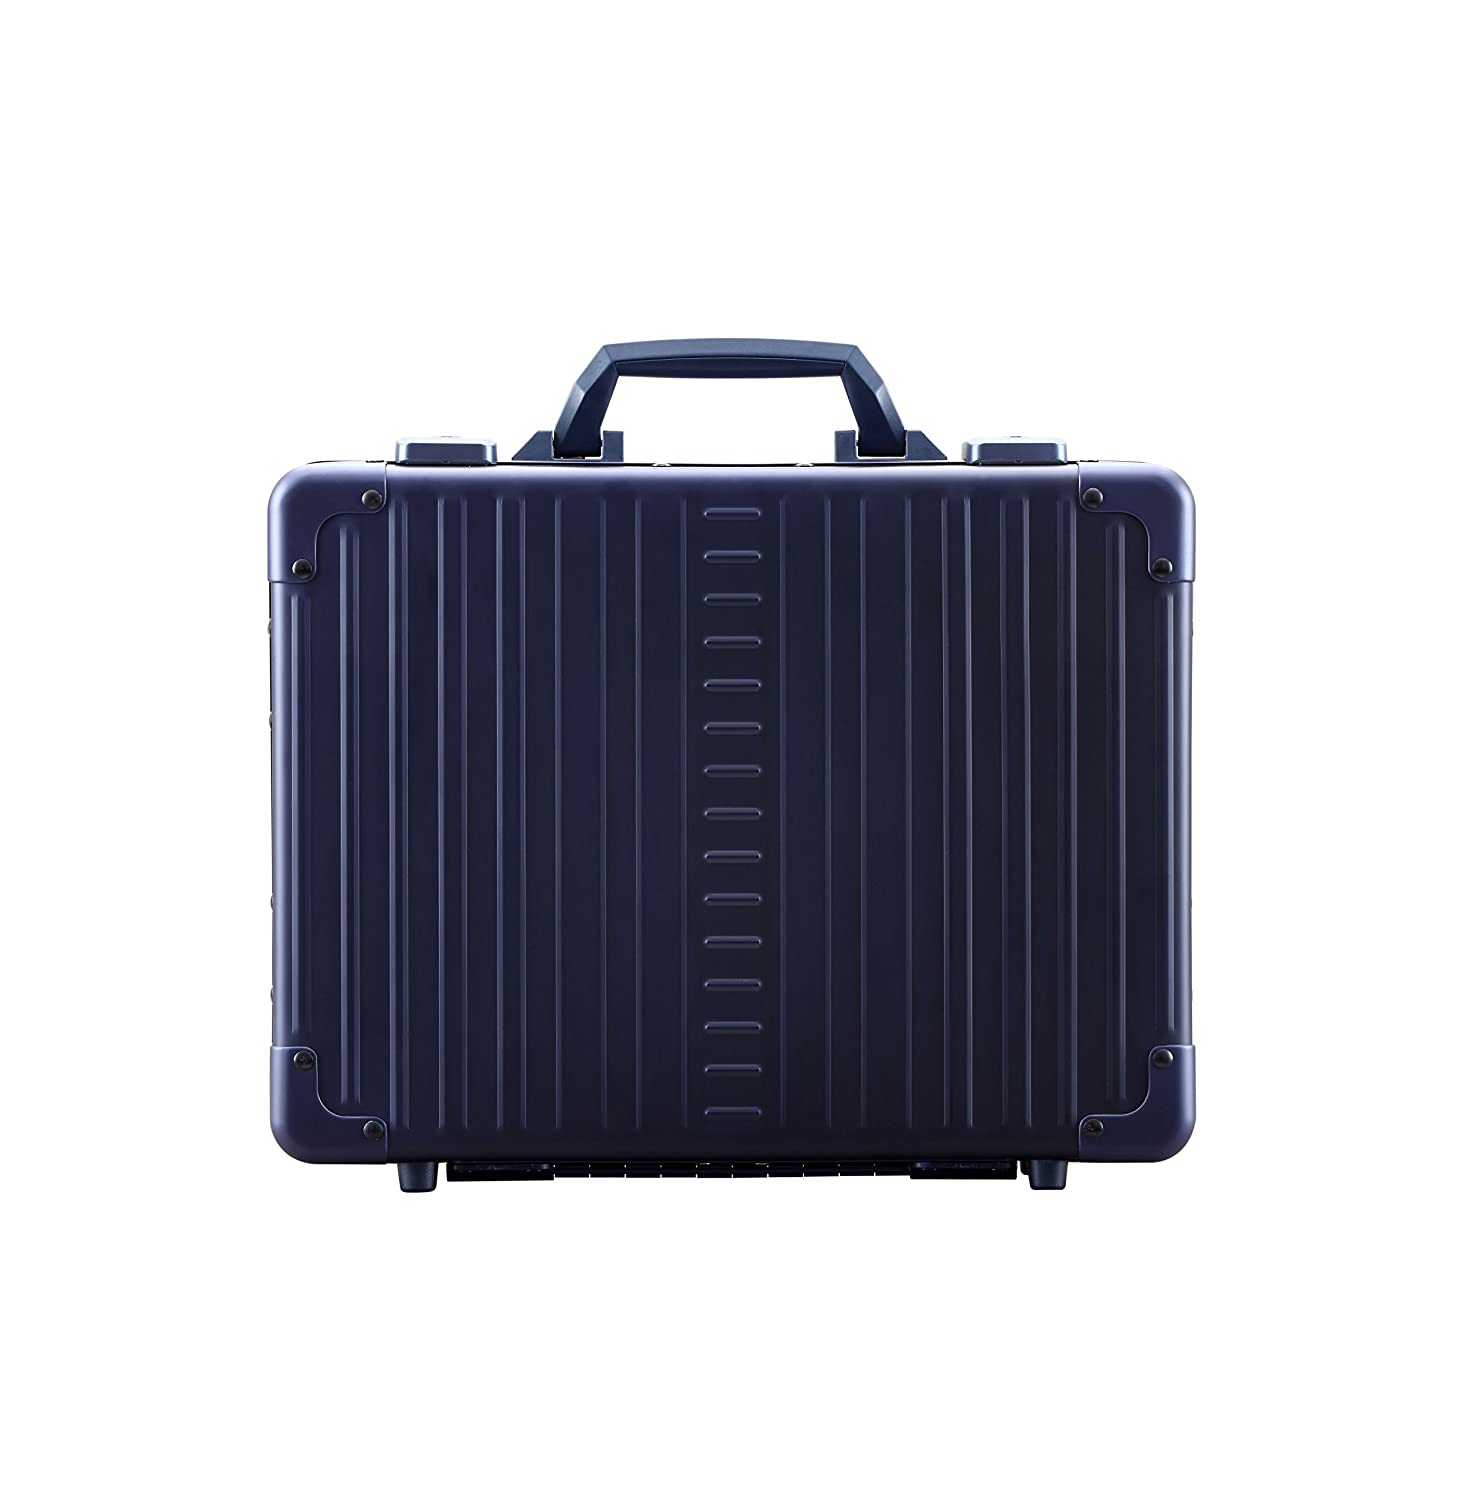 Image of Aleon Aluminum 3.5' Business Attache Case w/ Shoulder Strap Luggage